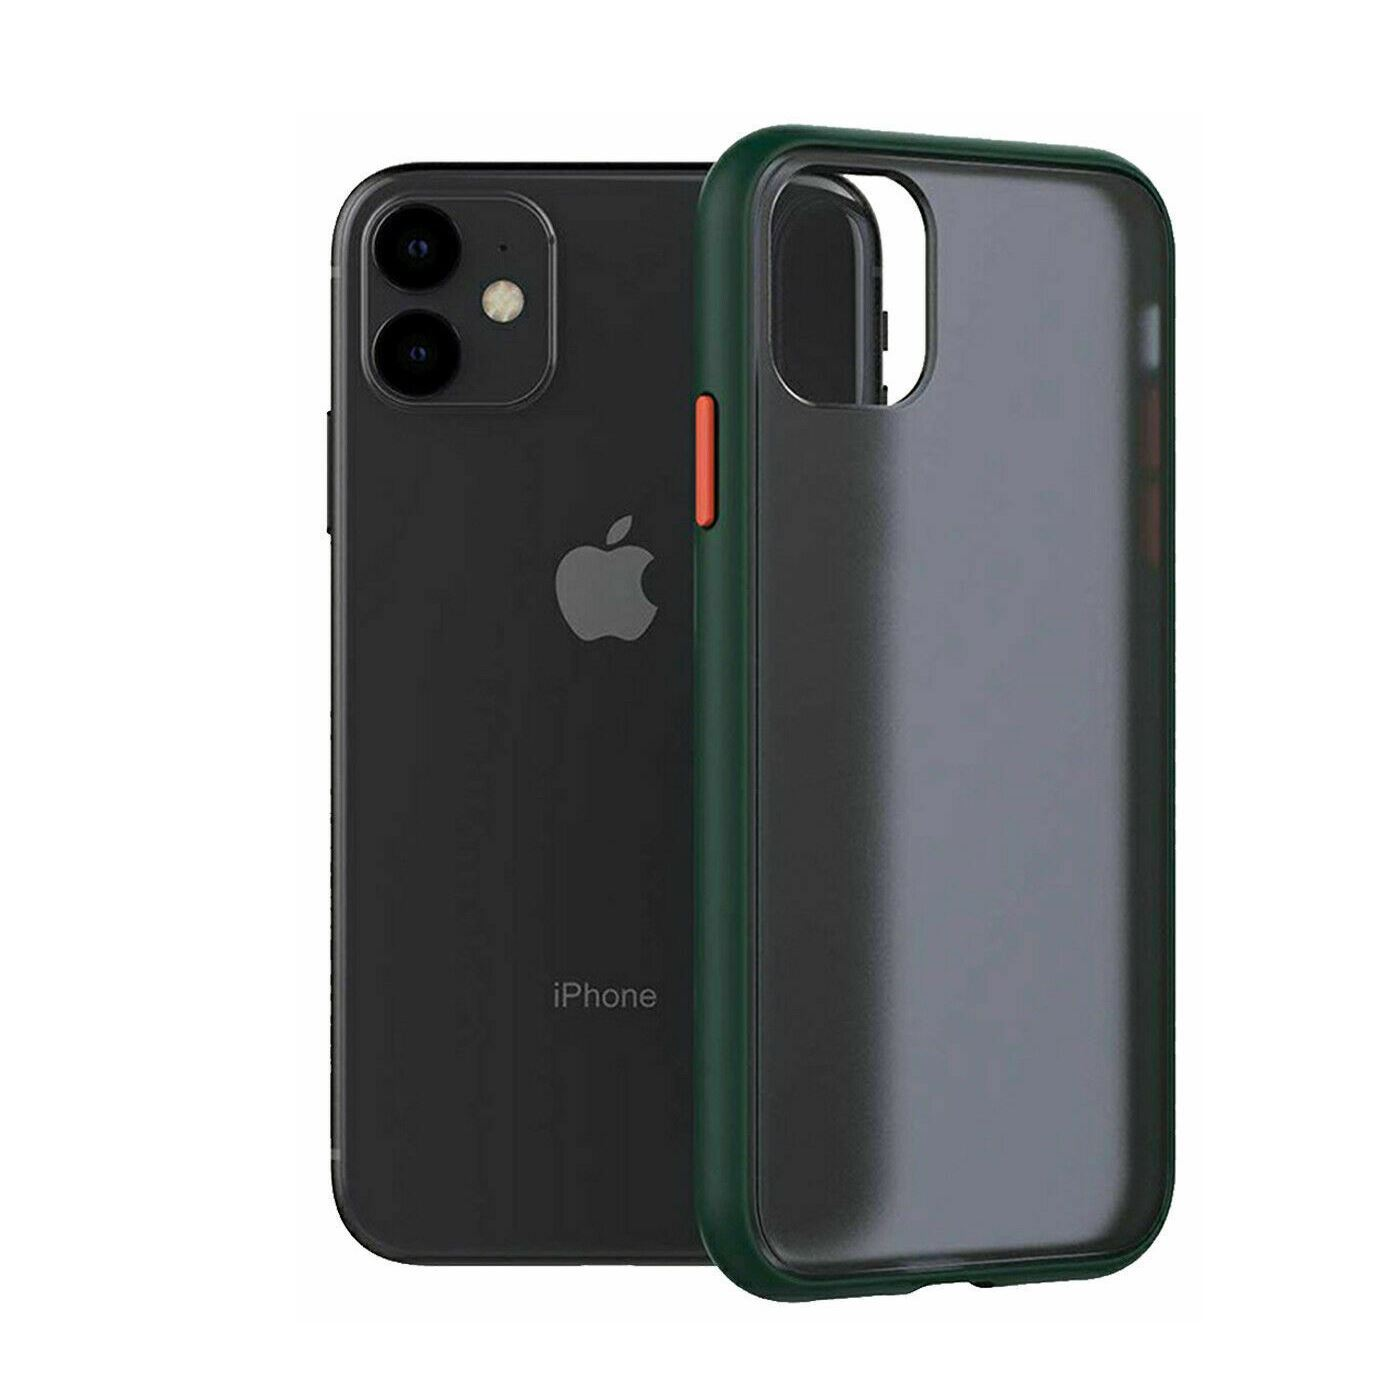 iPhone 11 Pro Case Bumper Hard Back Cover - Green